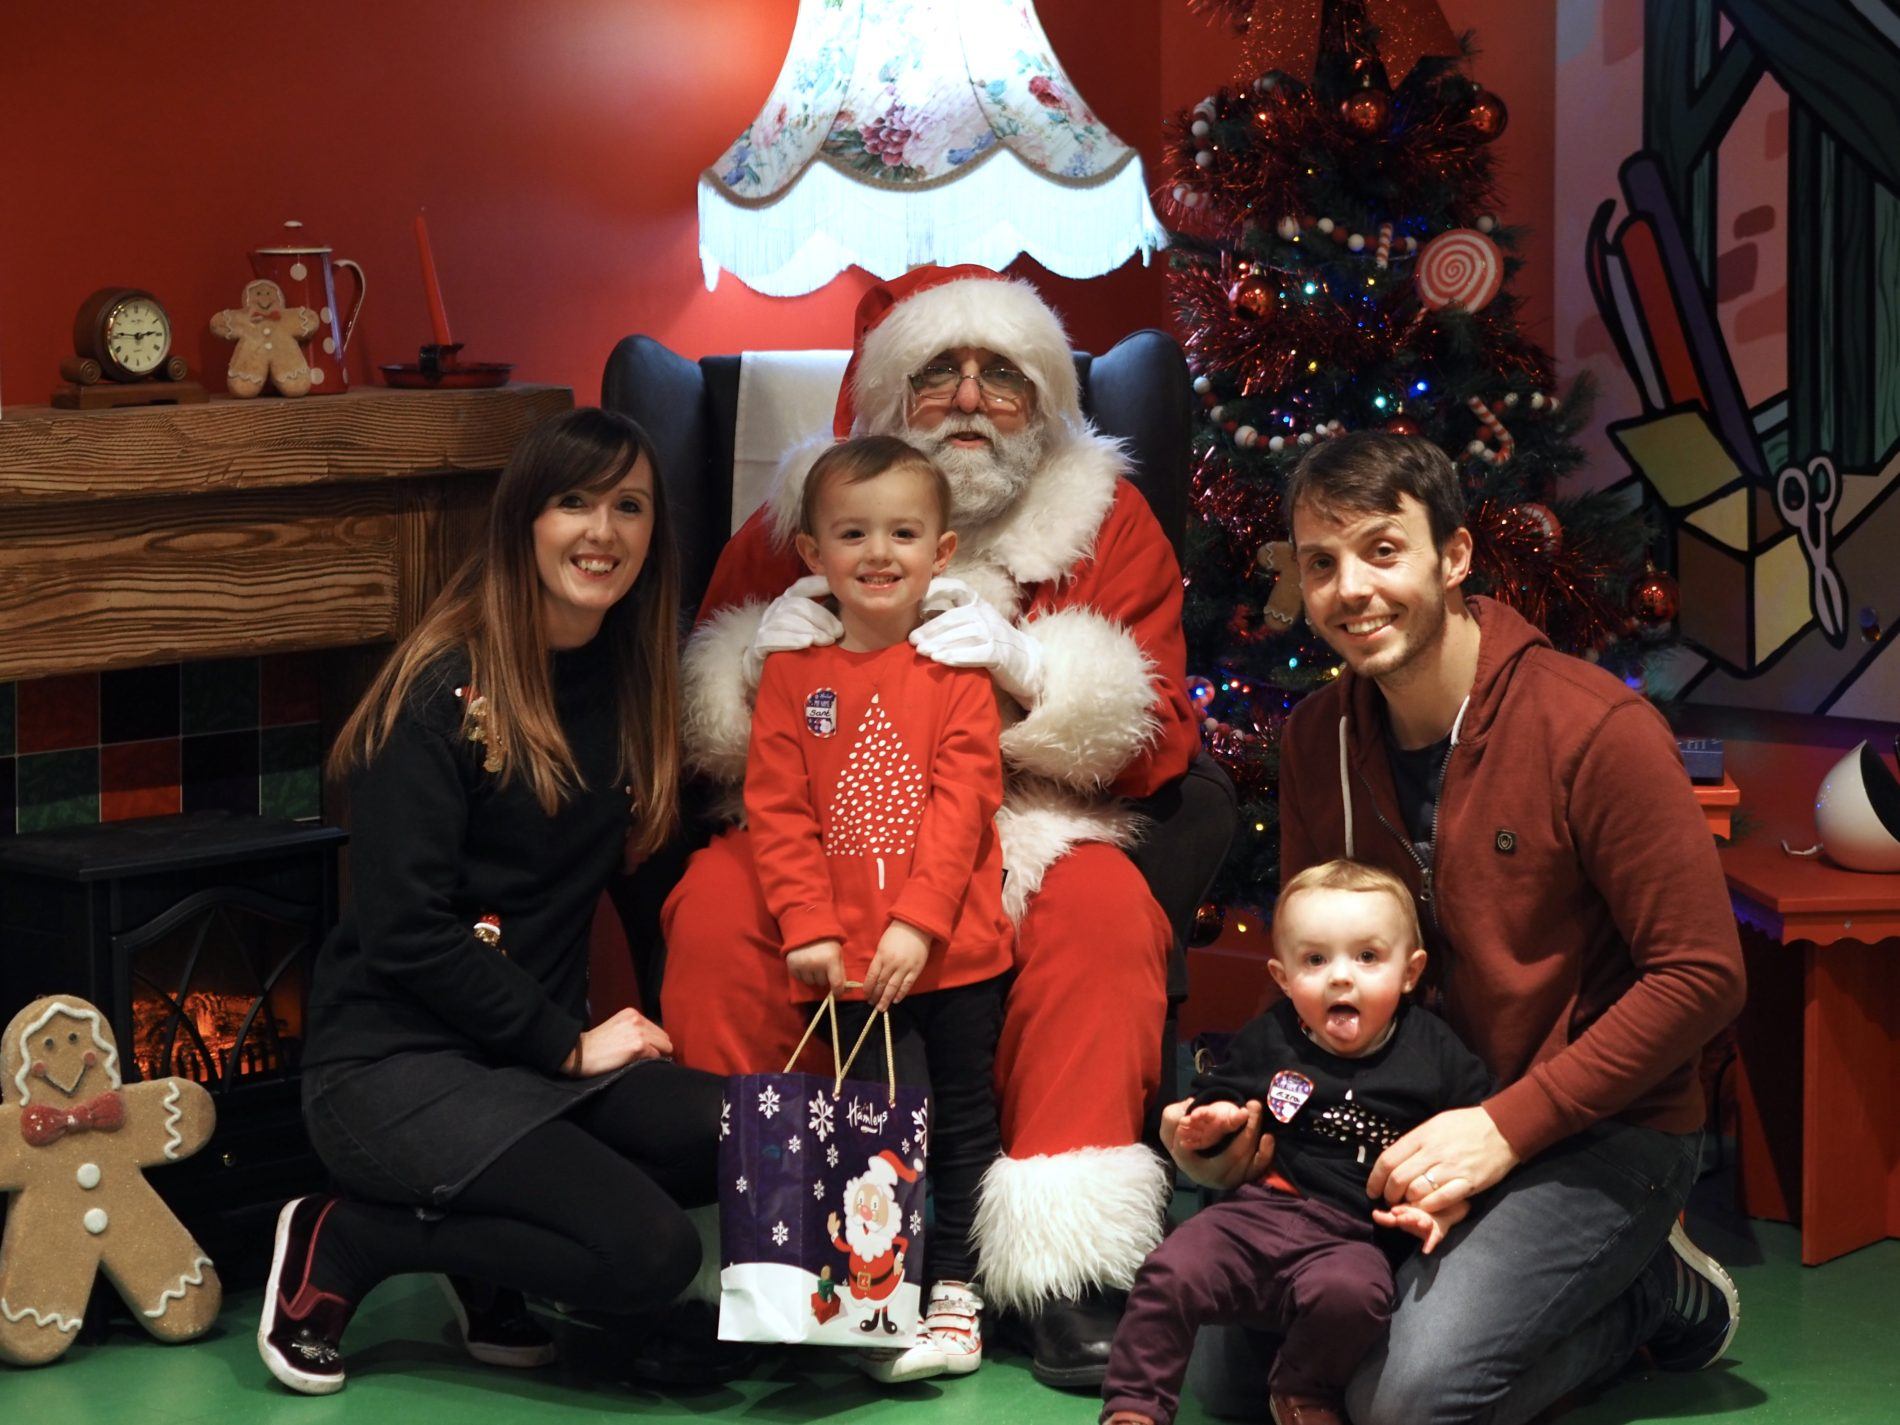 Father Christmas at Hamleys Cardiff - meeting the real deal